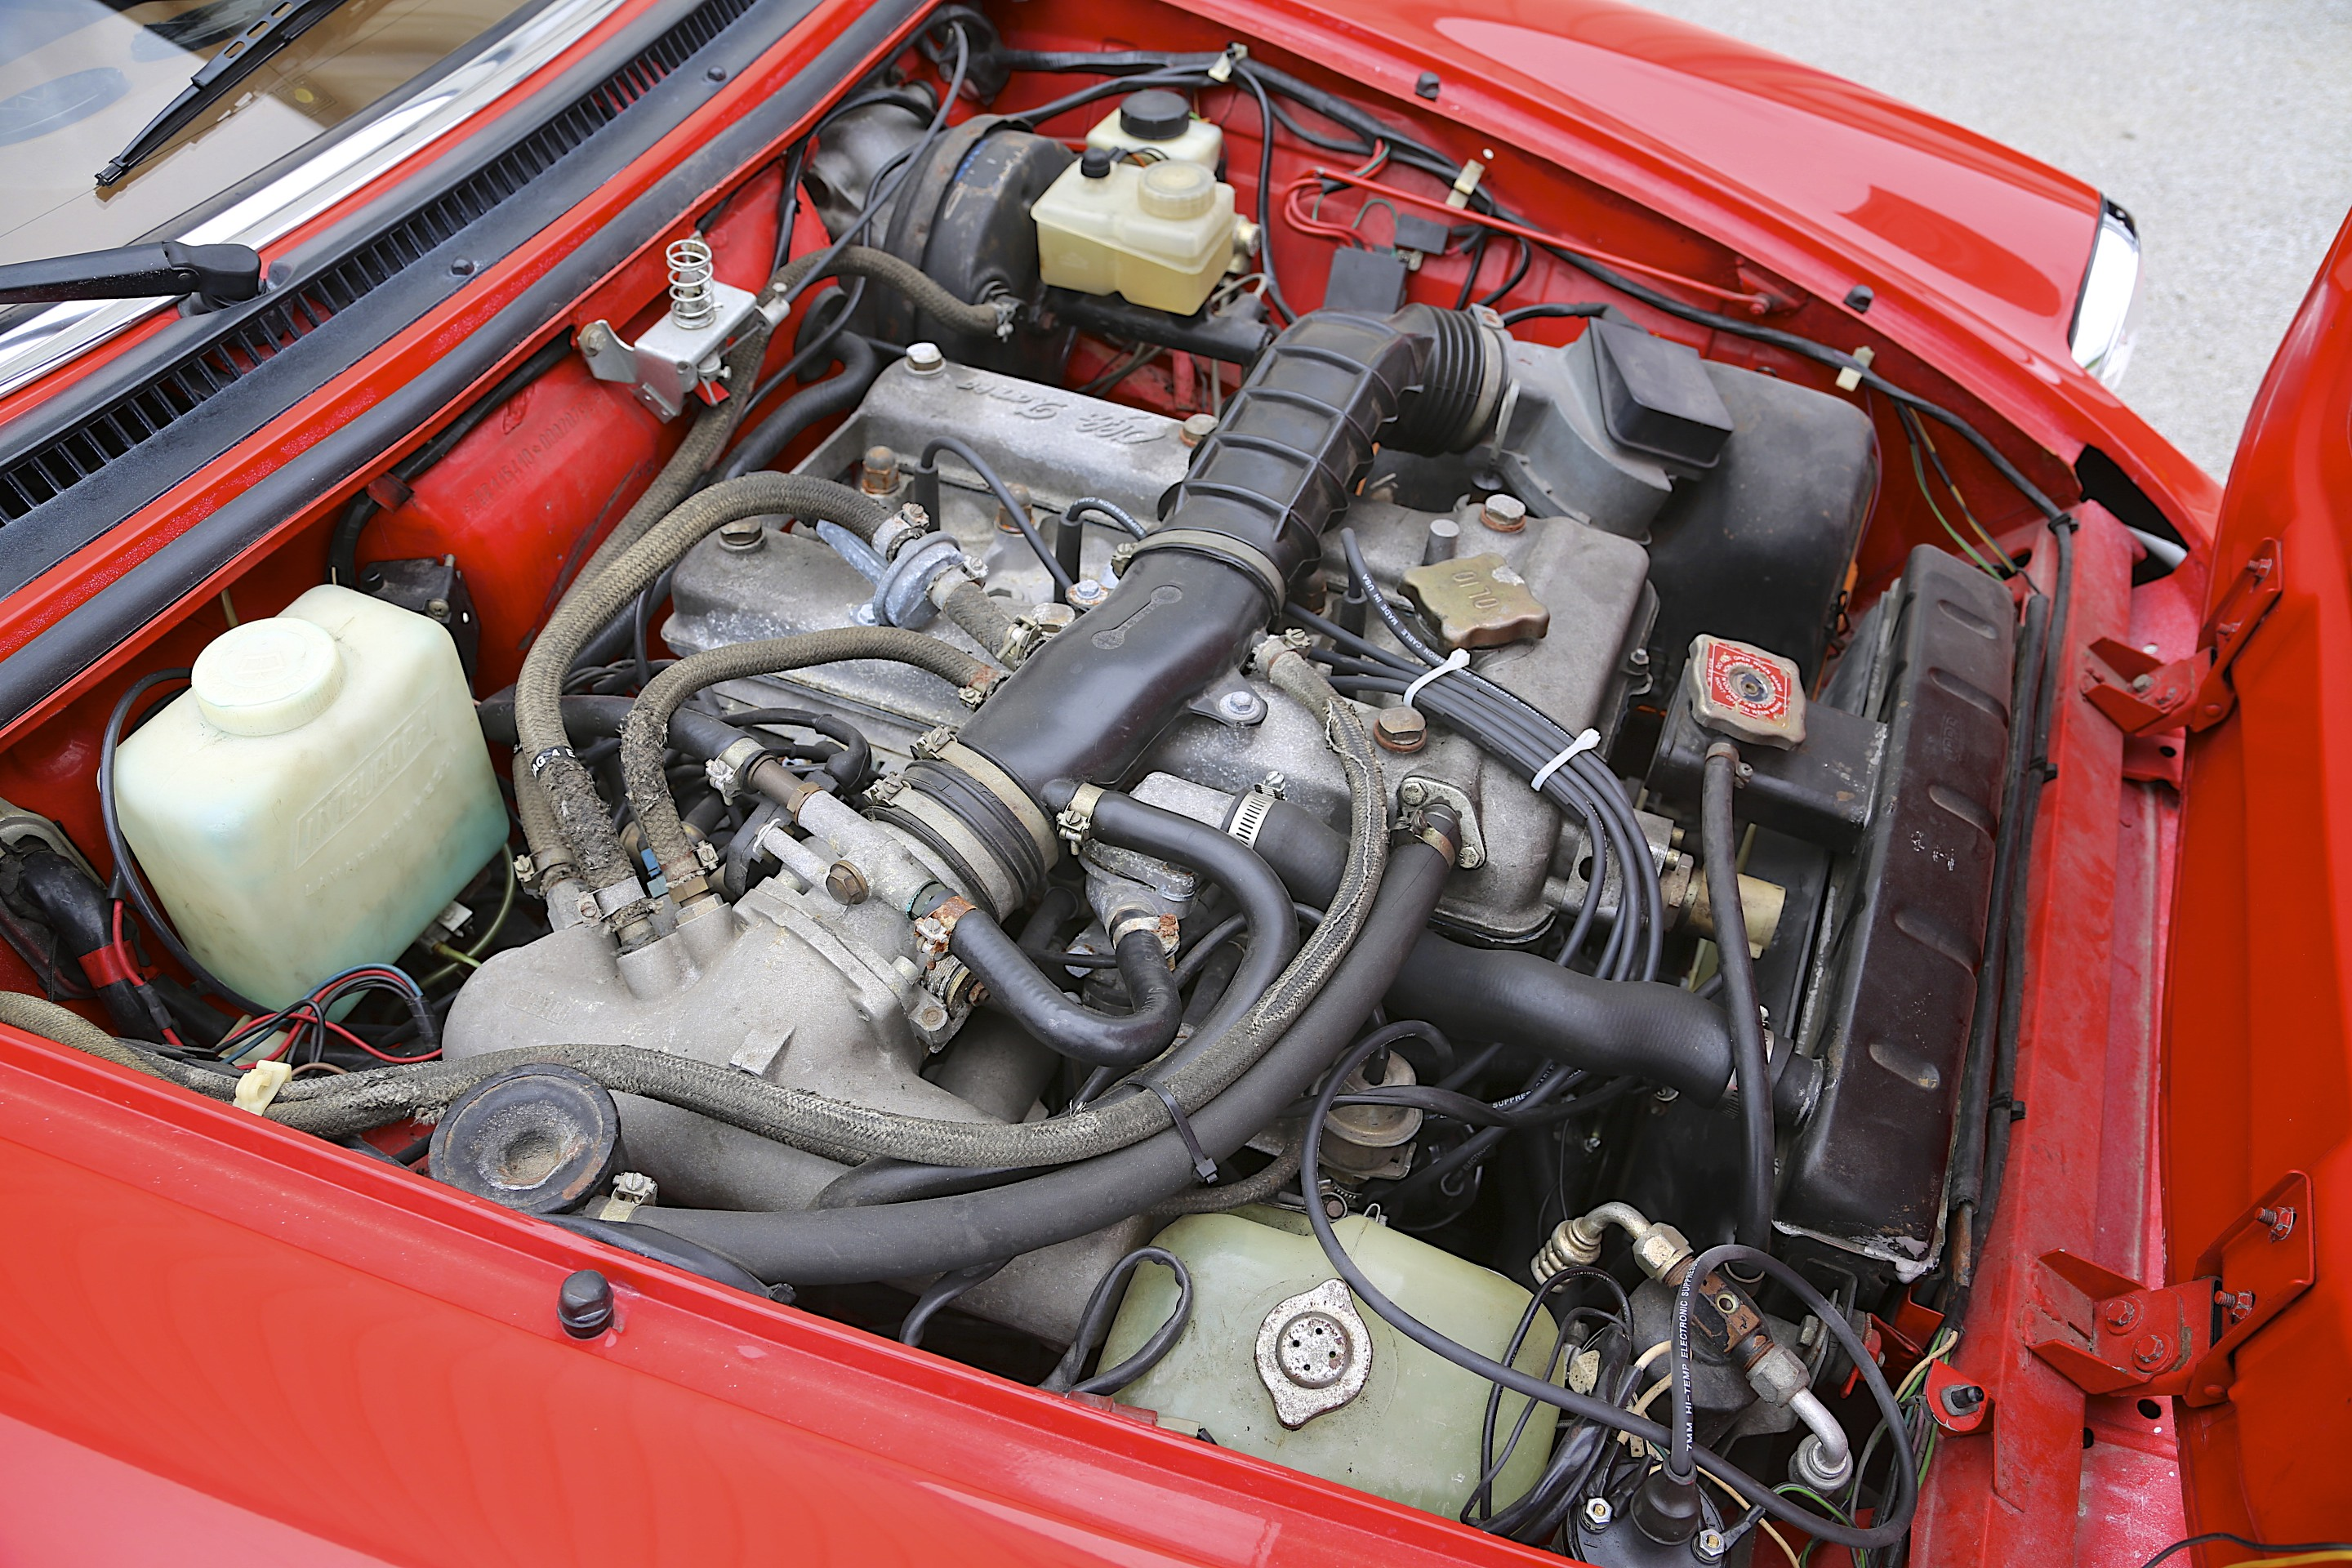 Service manual Diagram Of Engine Alfa Romeo Spider